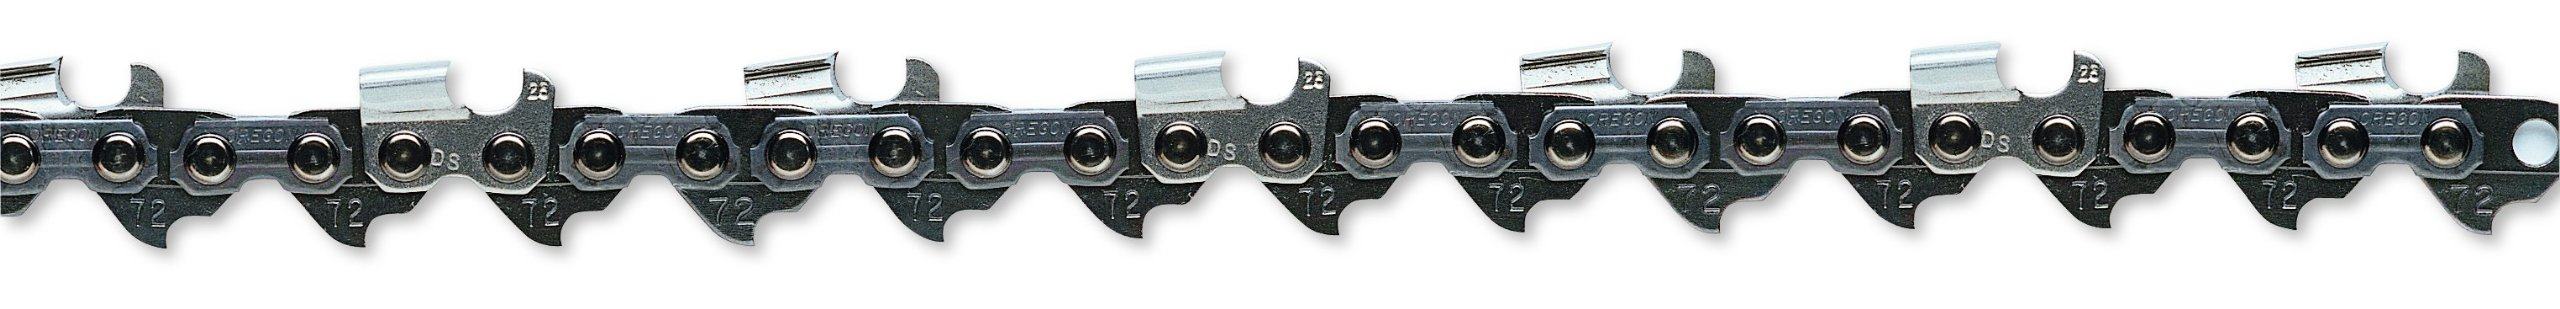 Oregon 72RD105G 105 Drive Link 3/8-Inch Ripping Chain, Standard Sequence